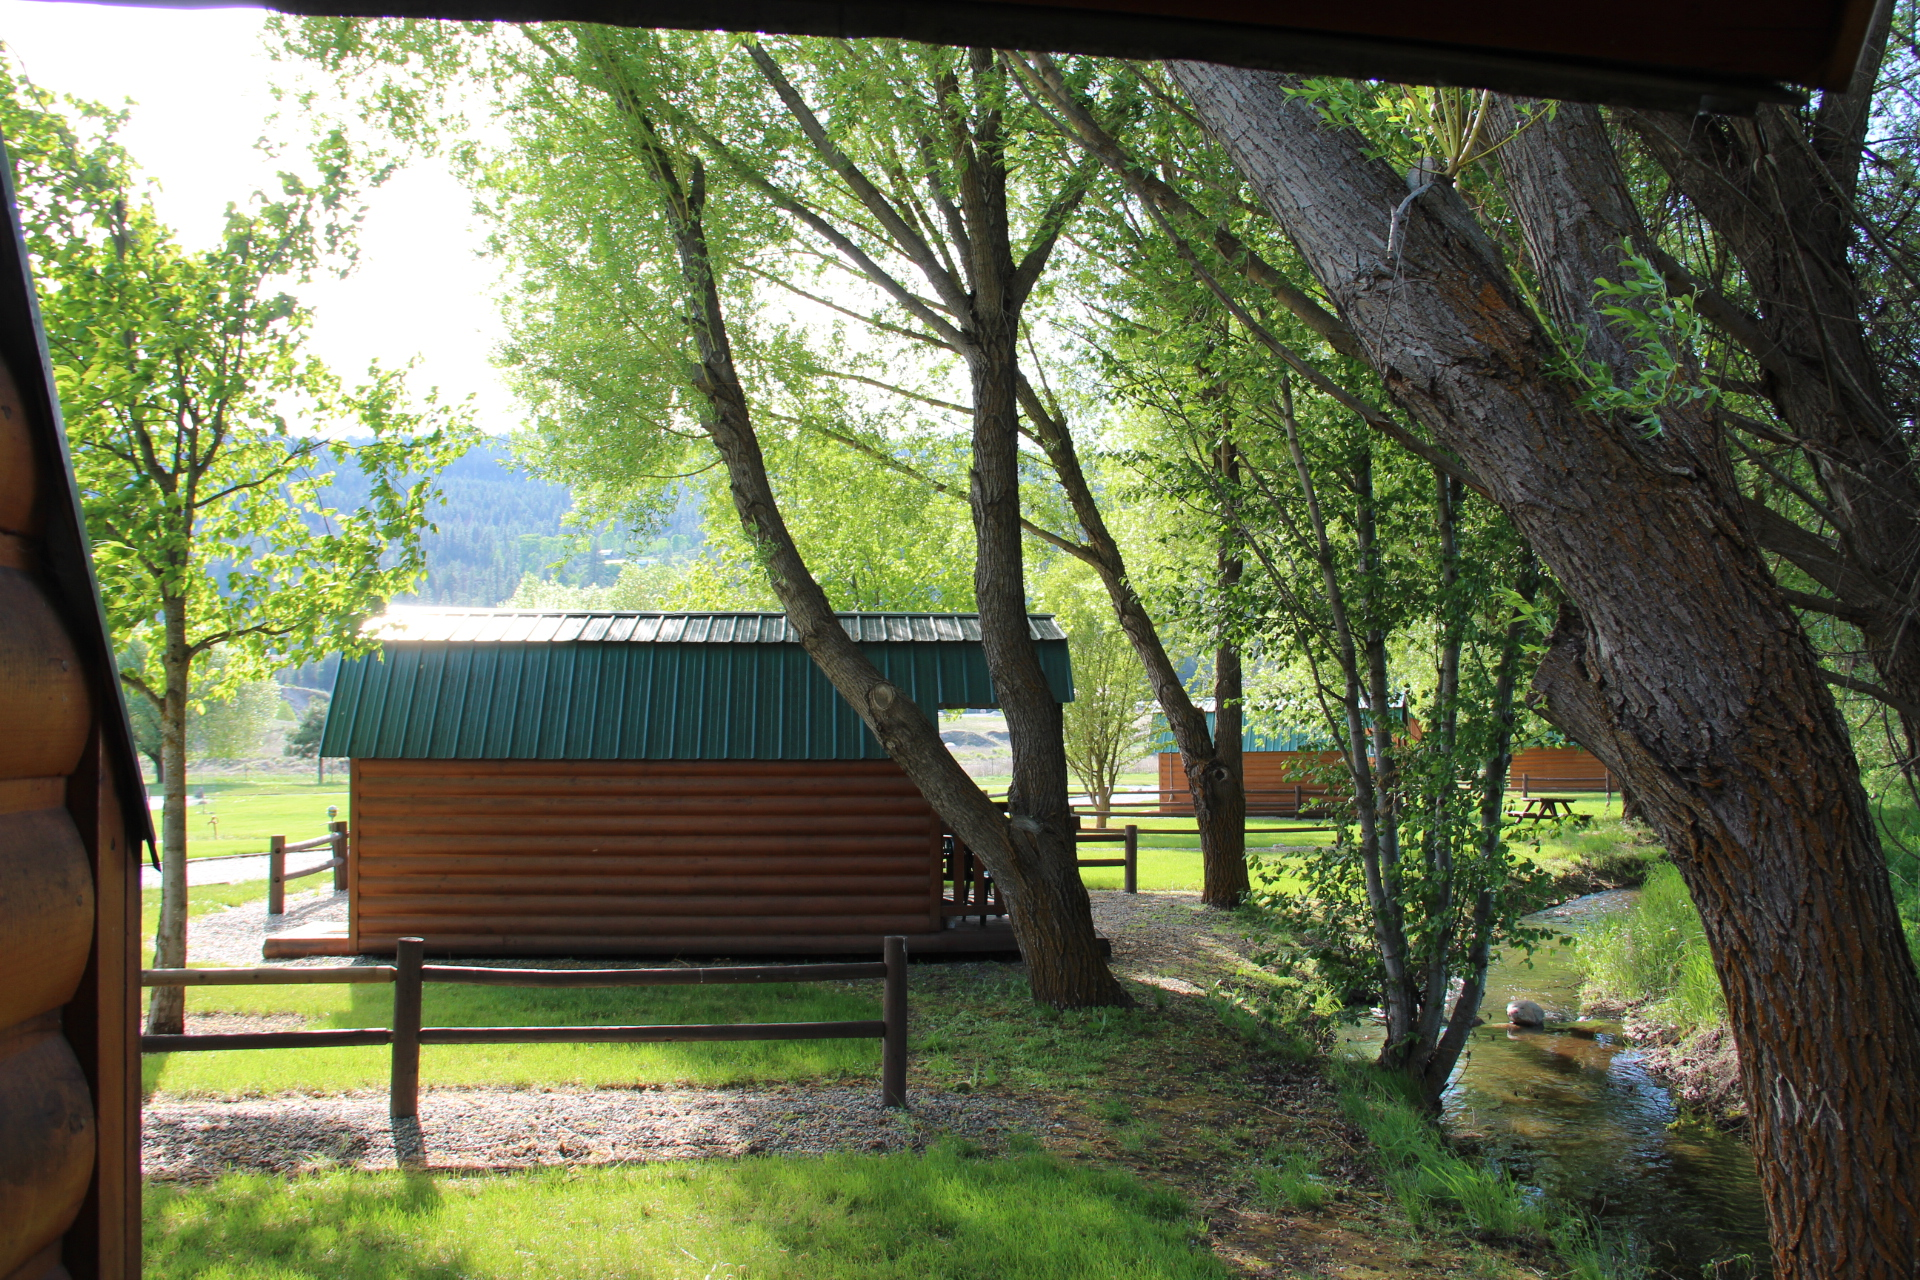 Camper cabins & tent sites on the creek.